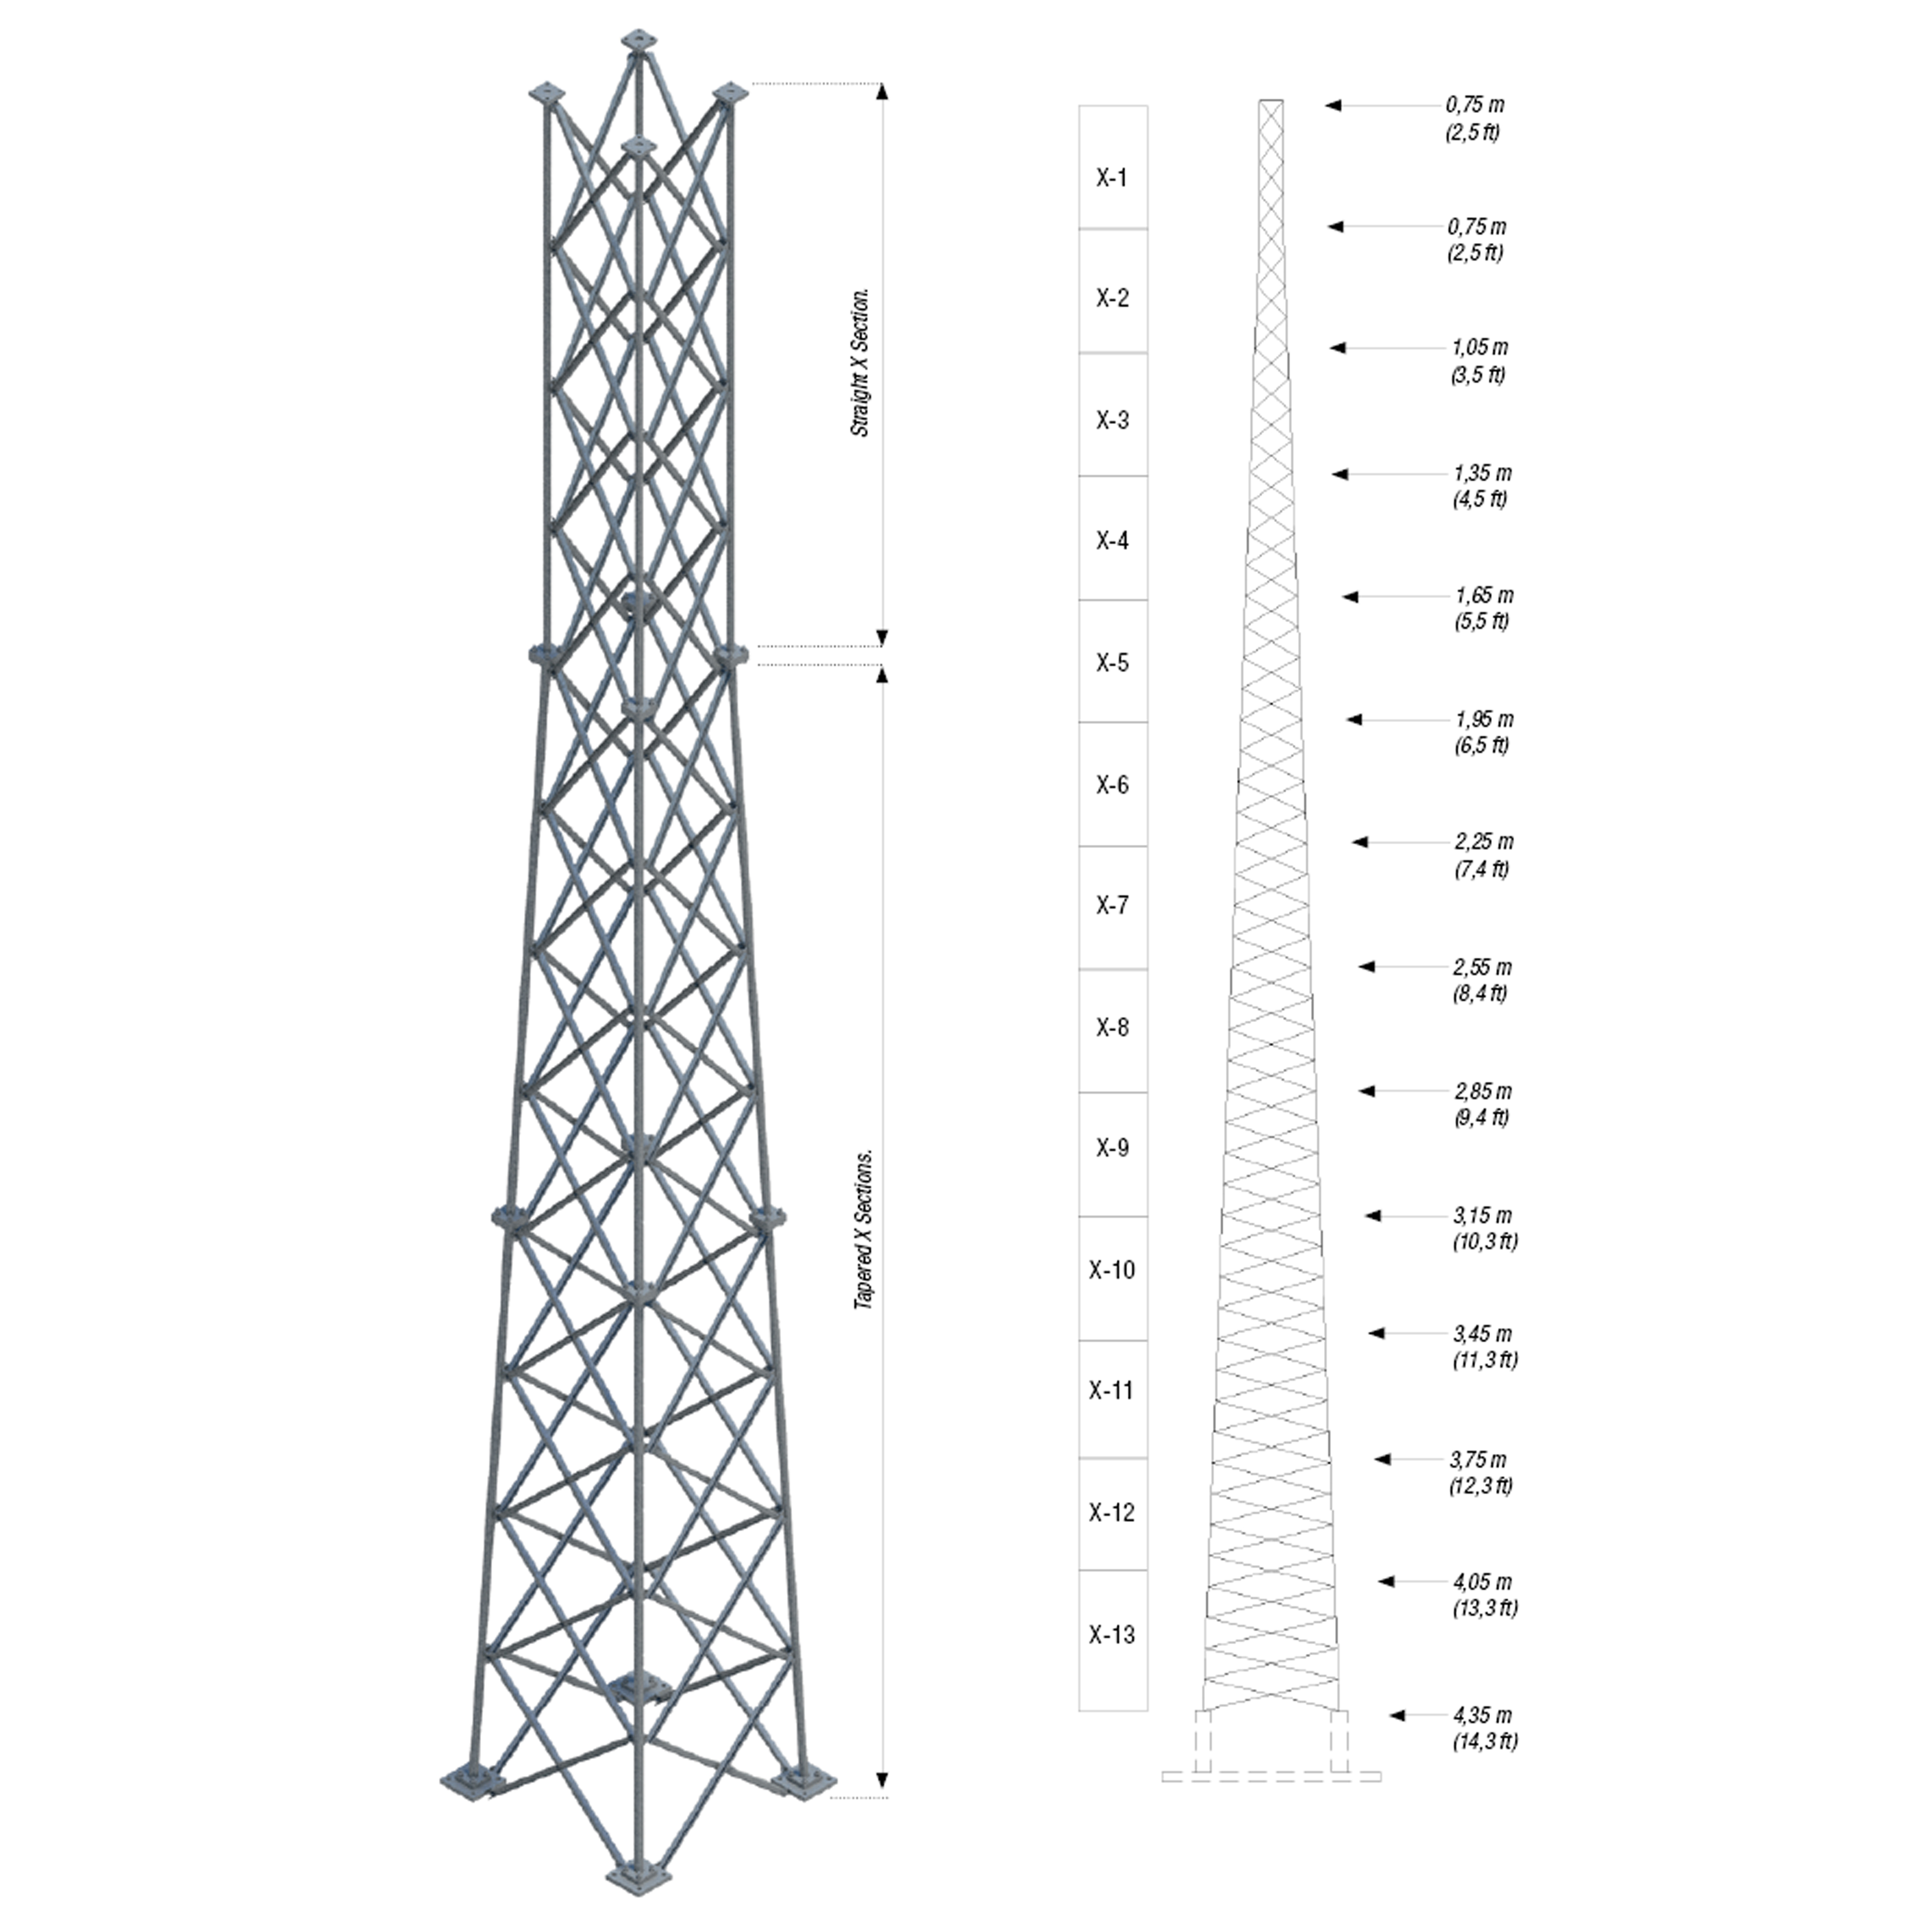 Masts & Towers